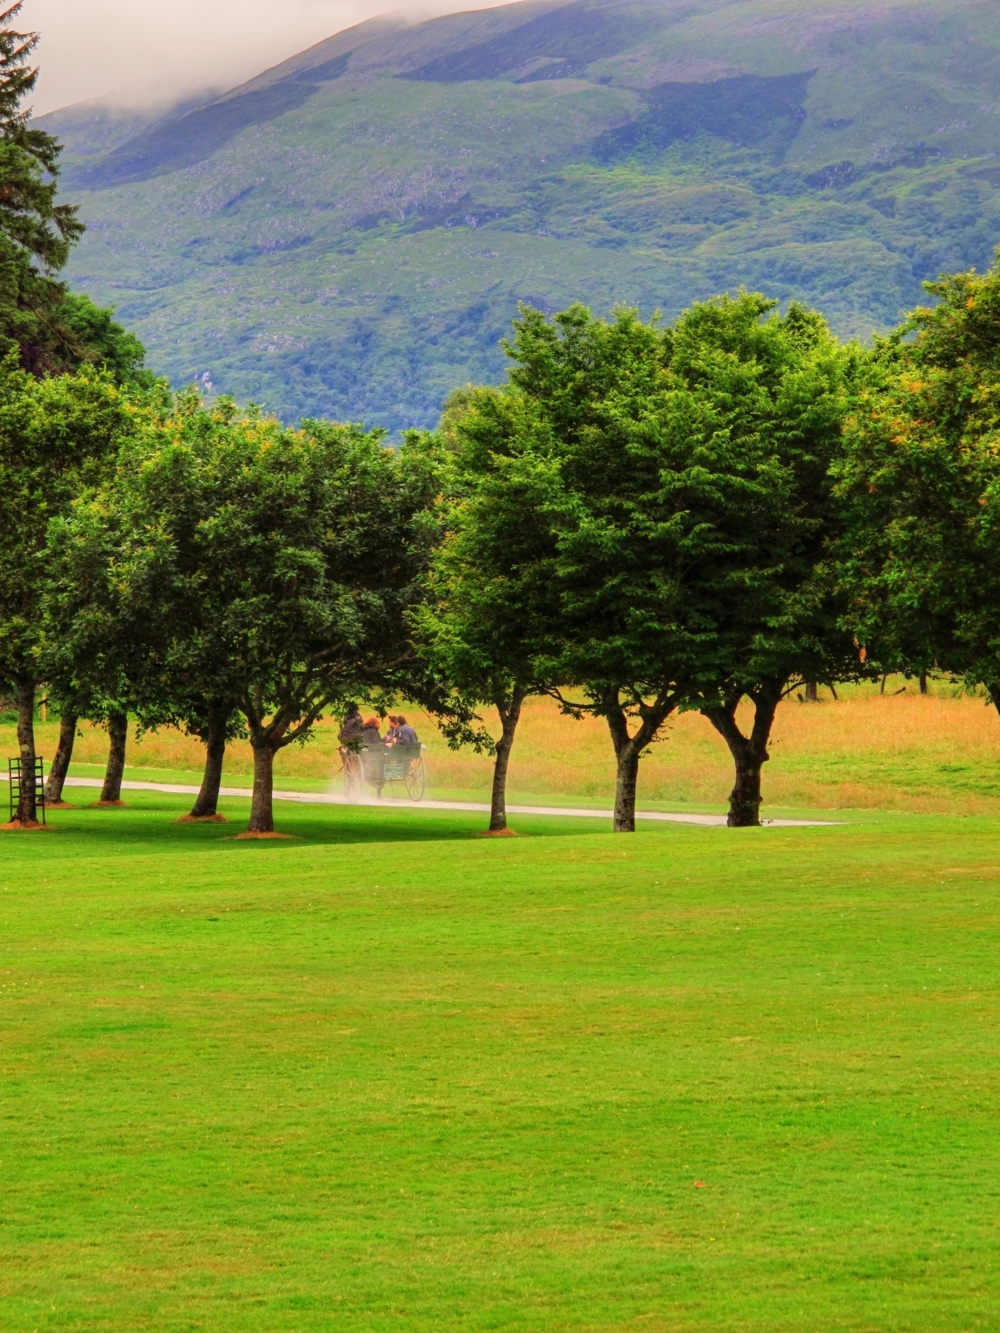 horse and trap in landscape, muckross house, killarney, ireland photo by susan wellington